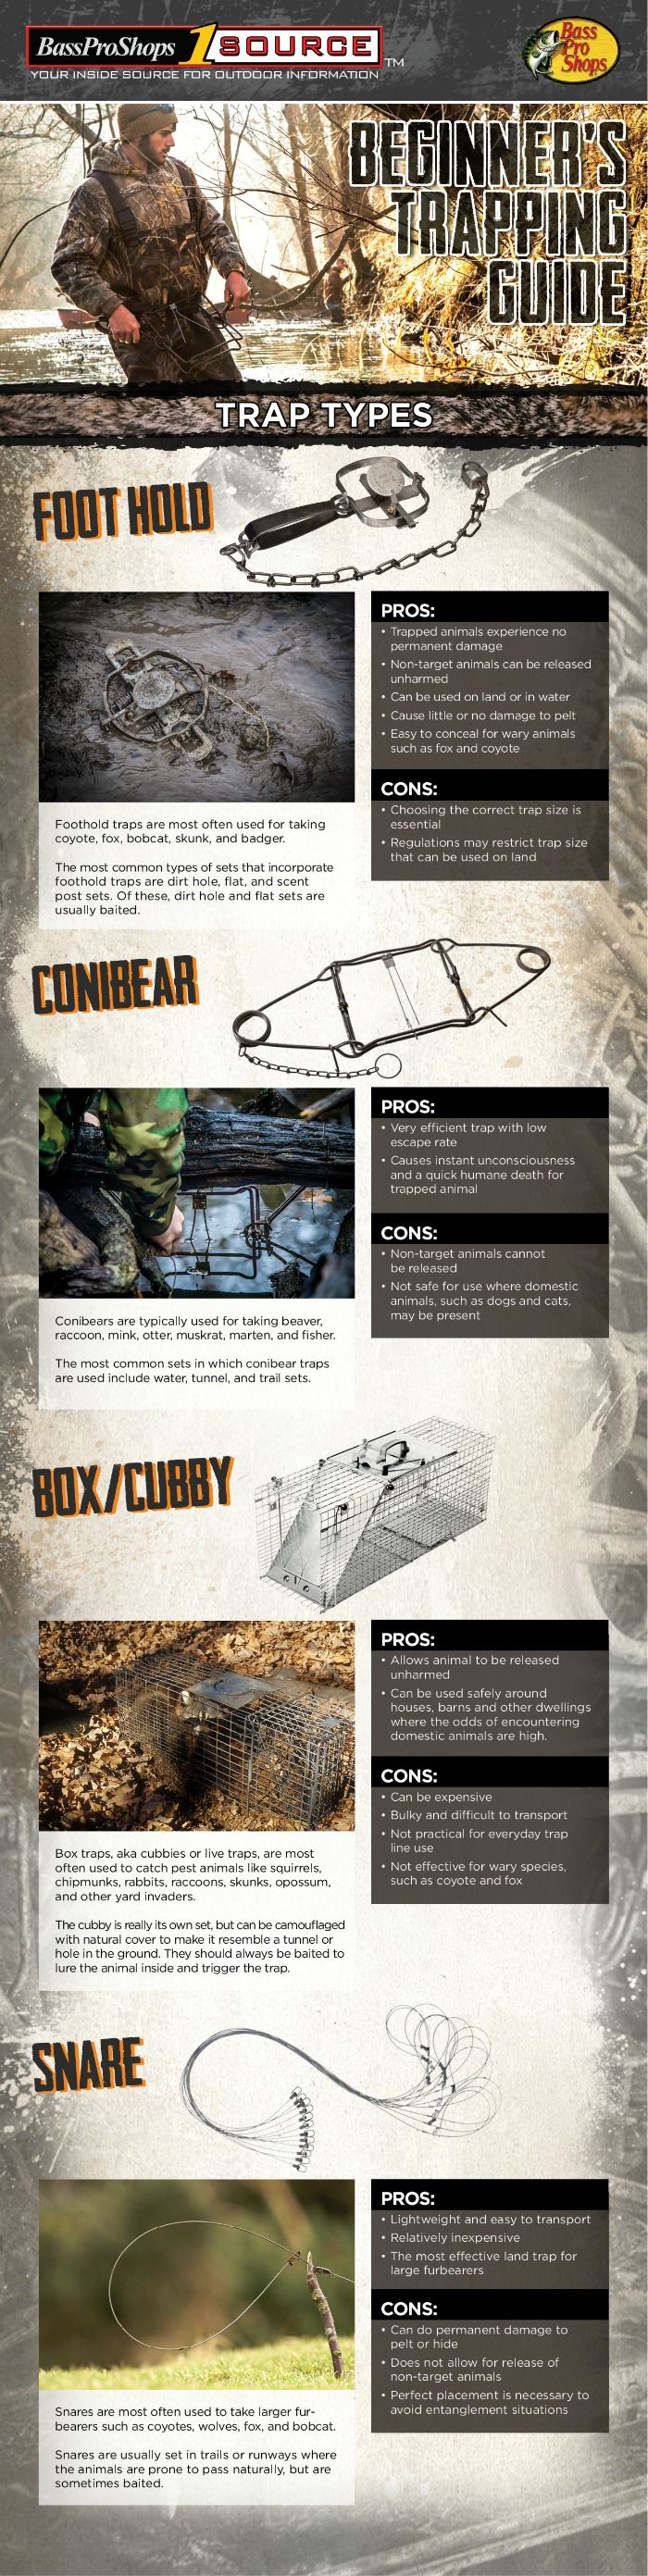 Beginner's Trapping Guide Infographic